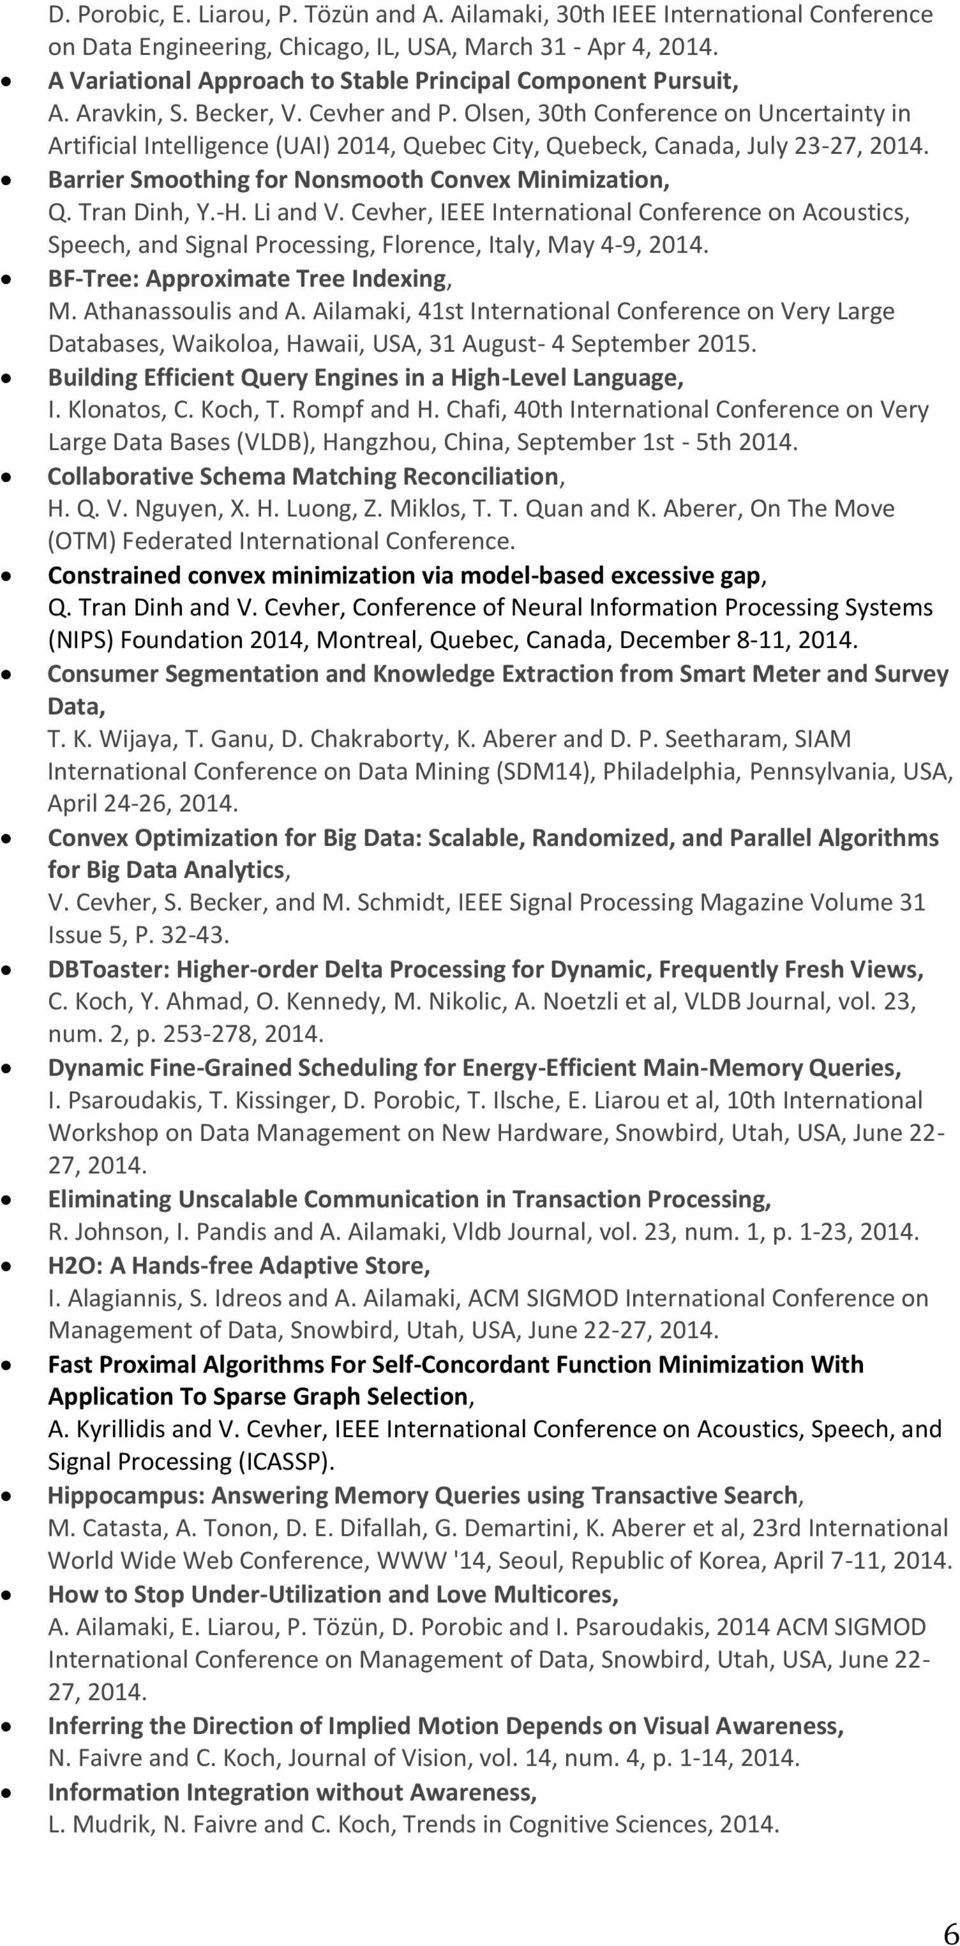 Cevher and P. Olsen, 30th Conference on Uncertainty in Artificial Intelligence (UAI) 2014, Quebec City, Quebeck, Canada, July 23-27, Barrier Smoothing for Nonsmooth Convex Minimization, Q.